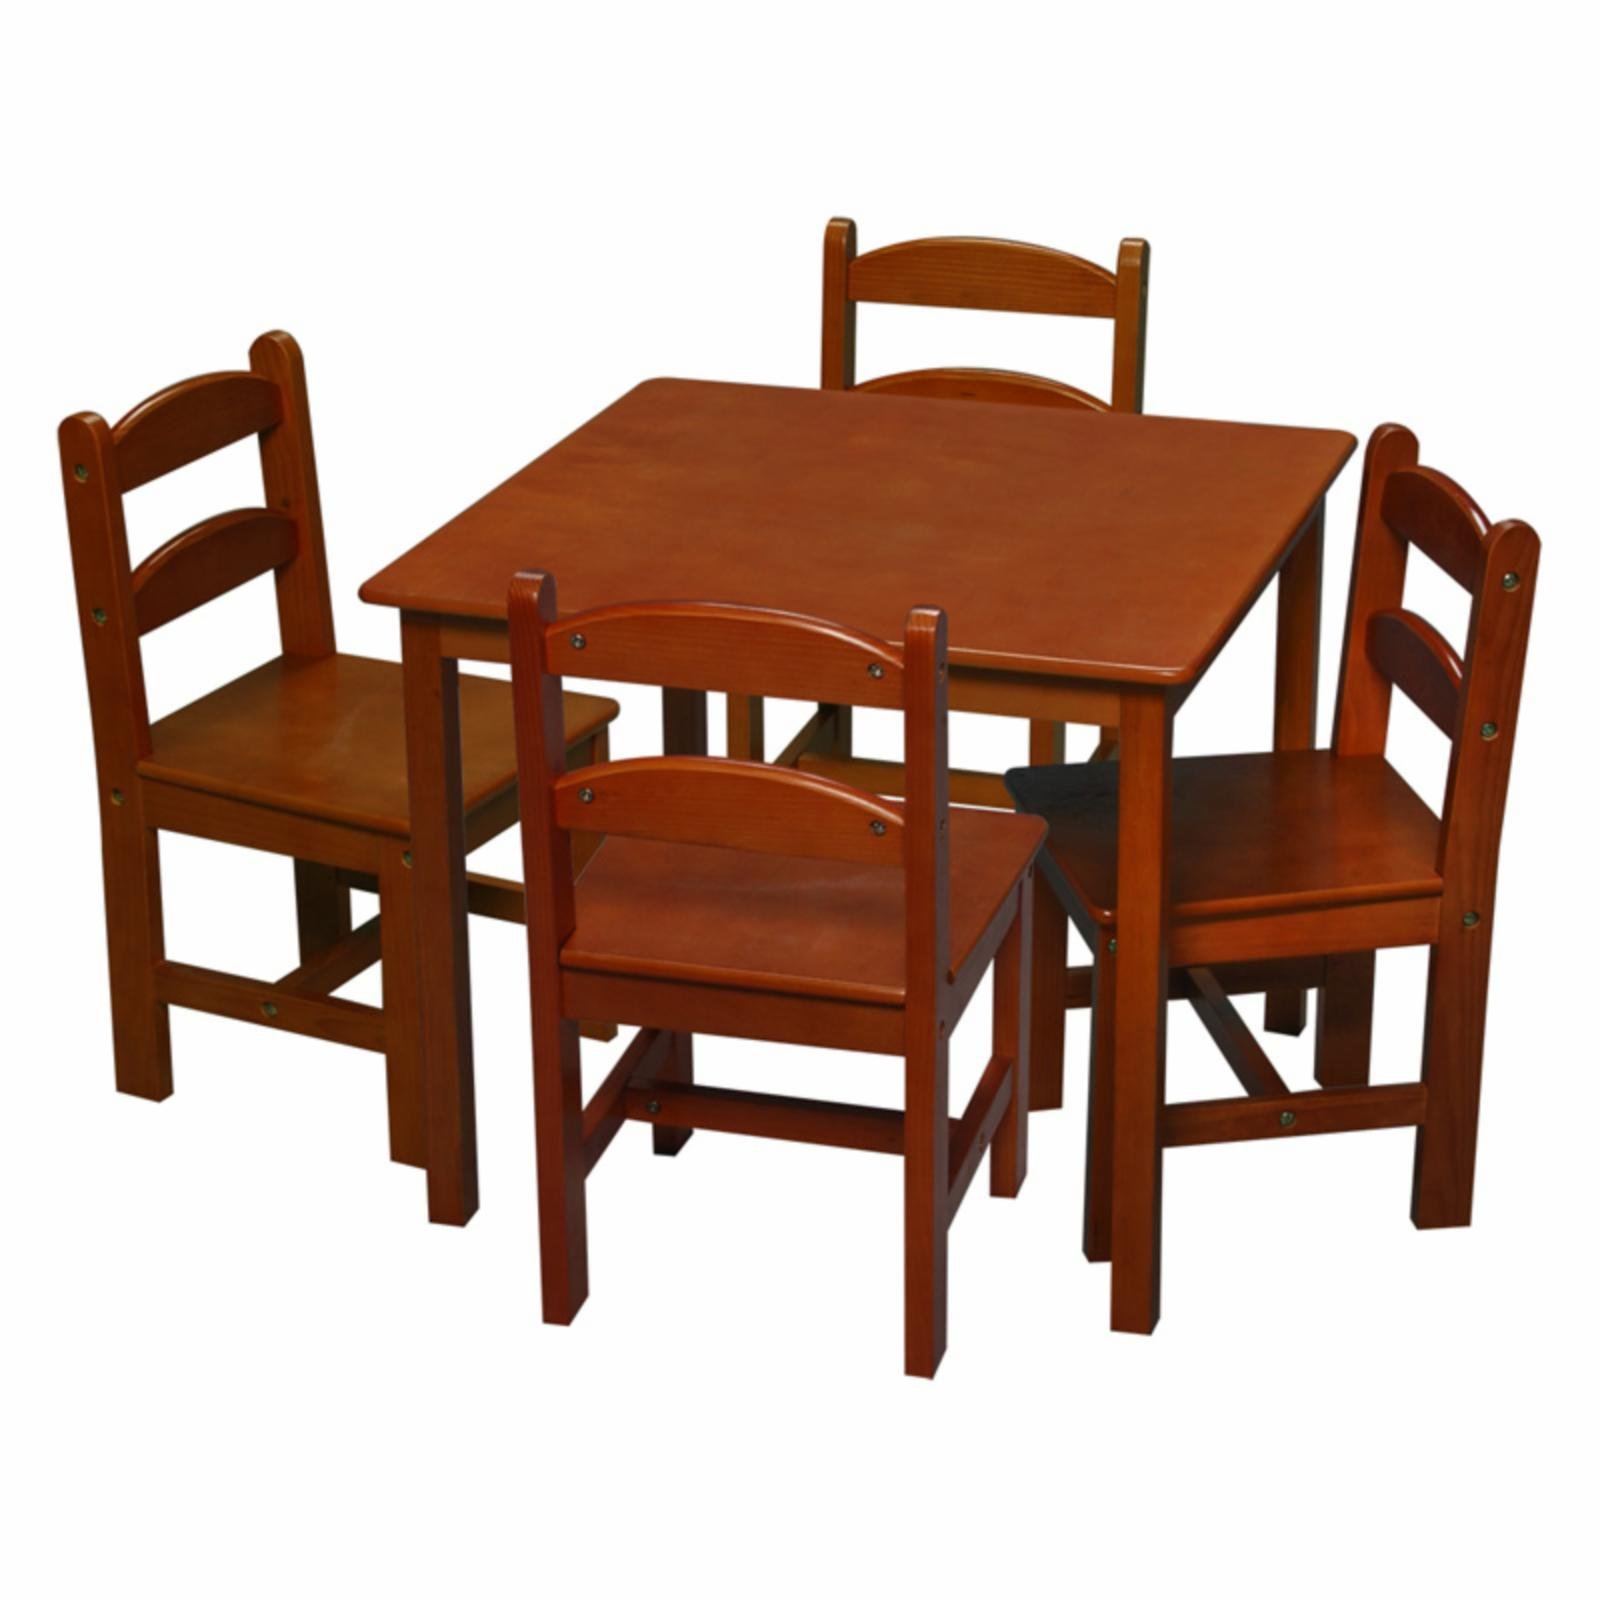 Gift Mark Square Table and Chair Set - 5 Piece - 3008H